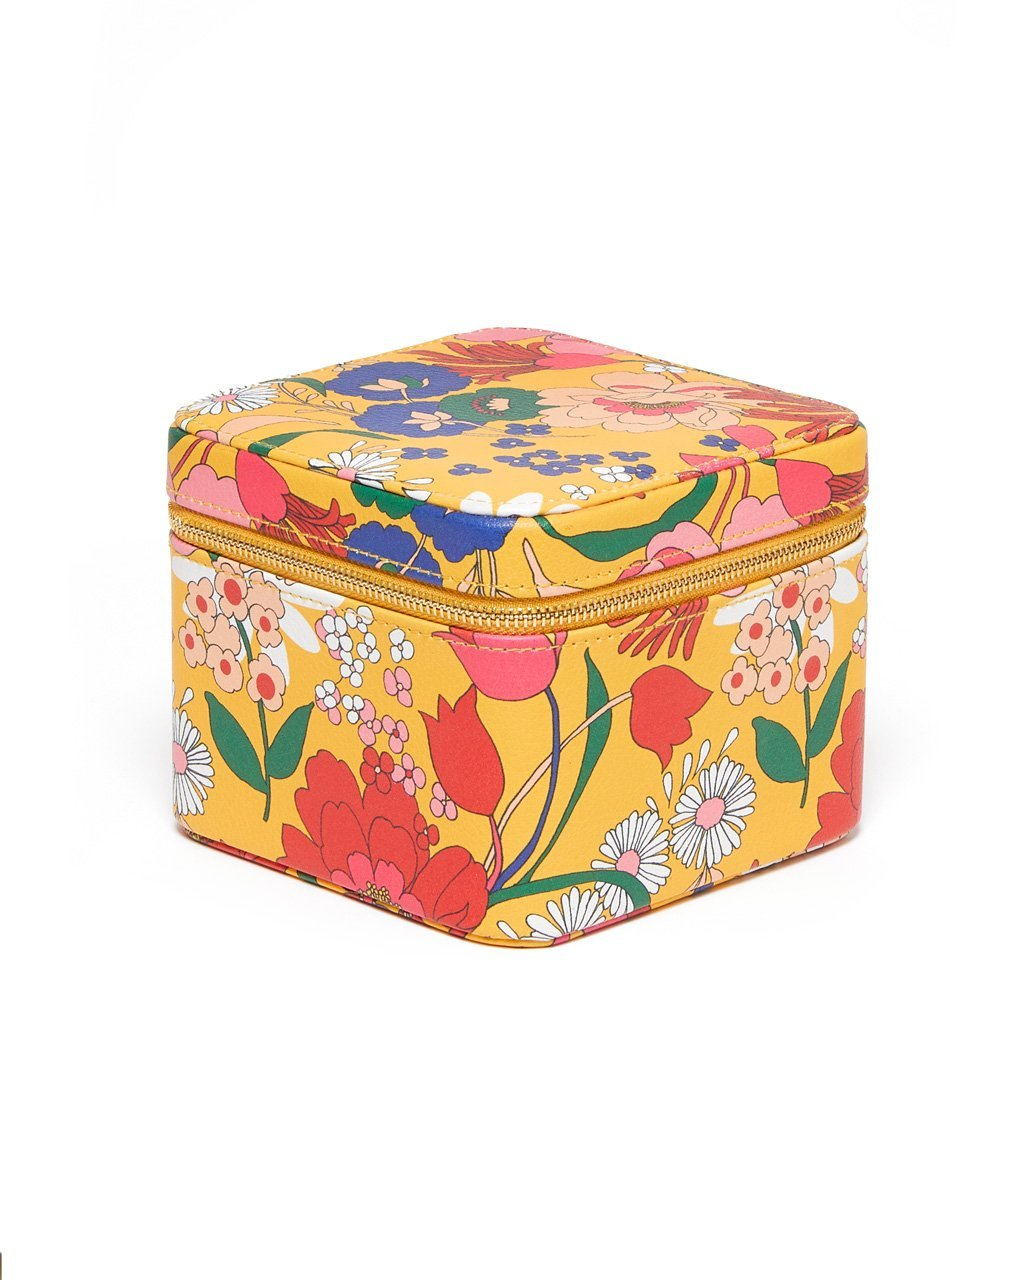 Yellow leatherette jewelry organizer with bright floral pattern